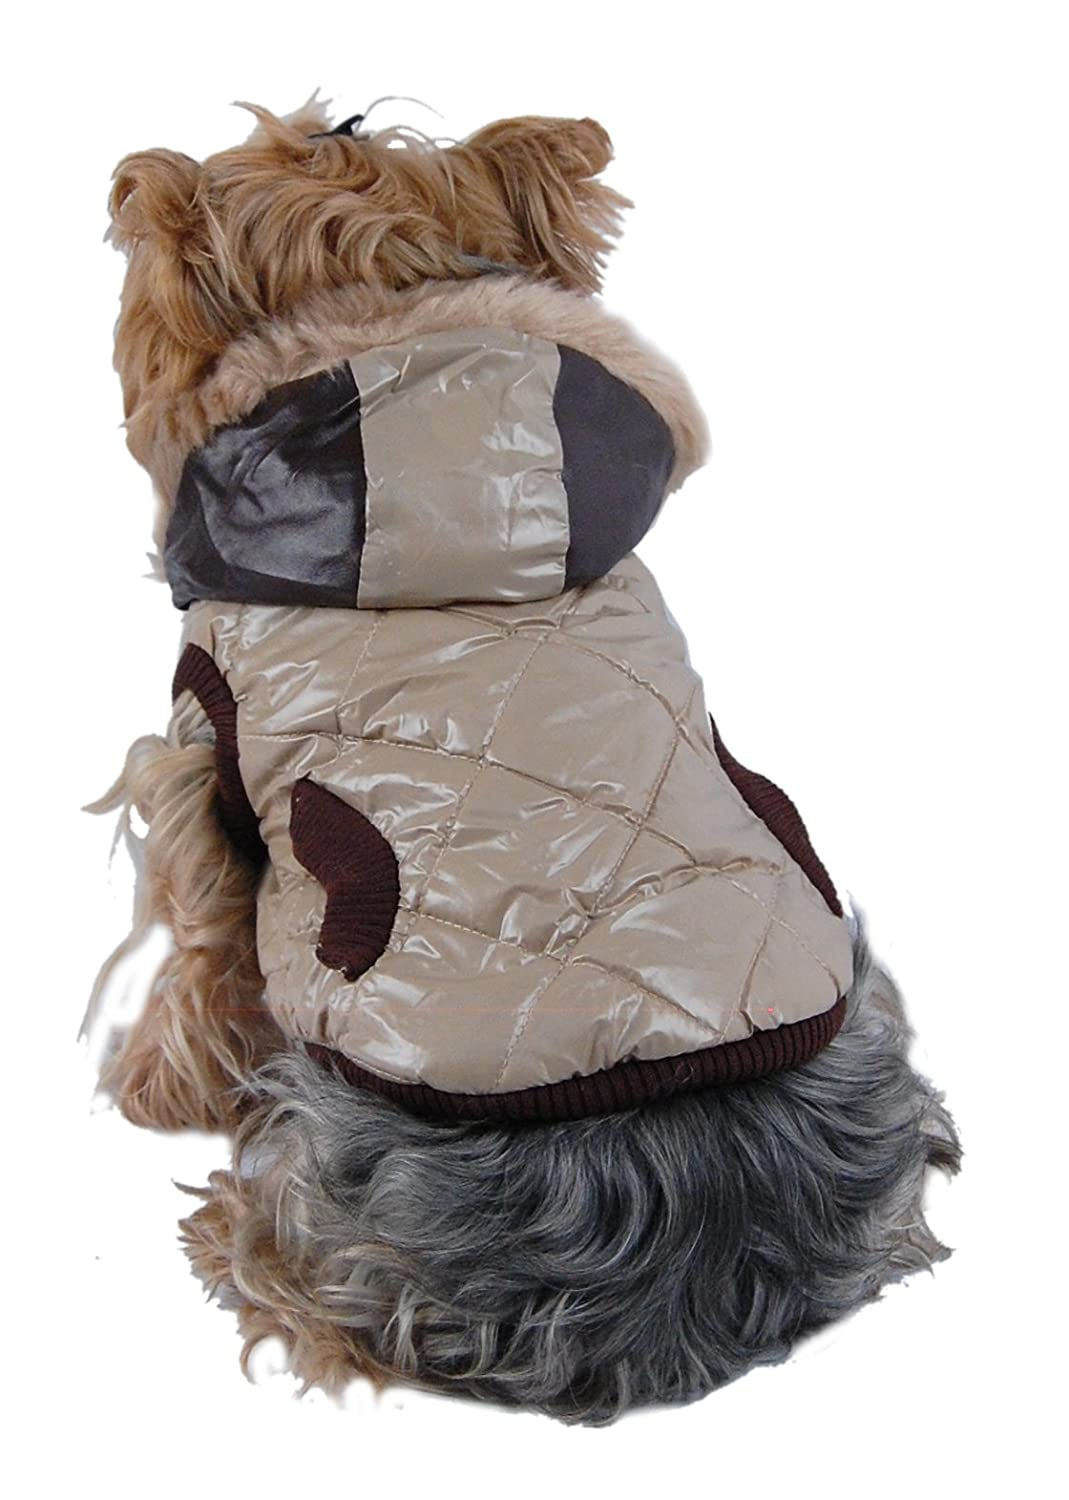 Anima Quilted Jacket with Hood X-Small Tan and Brown